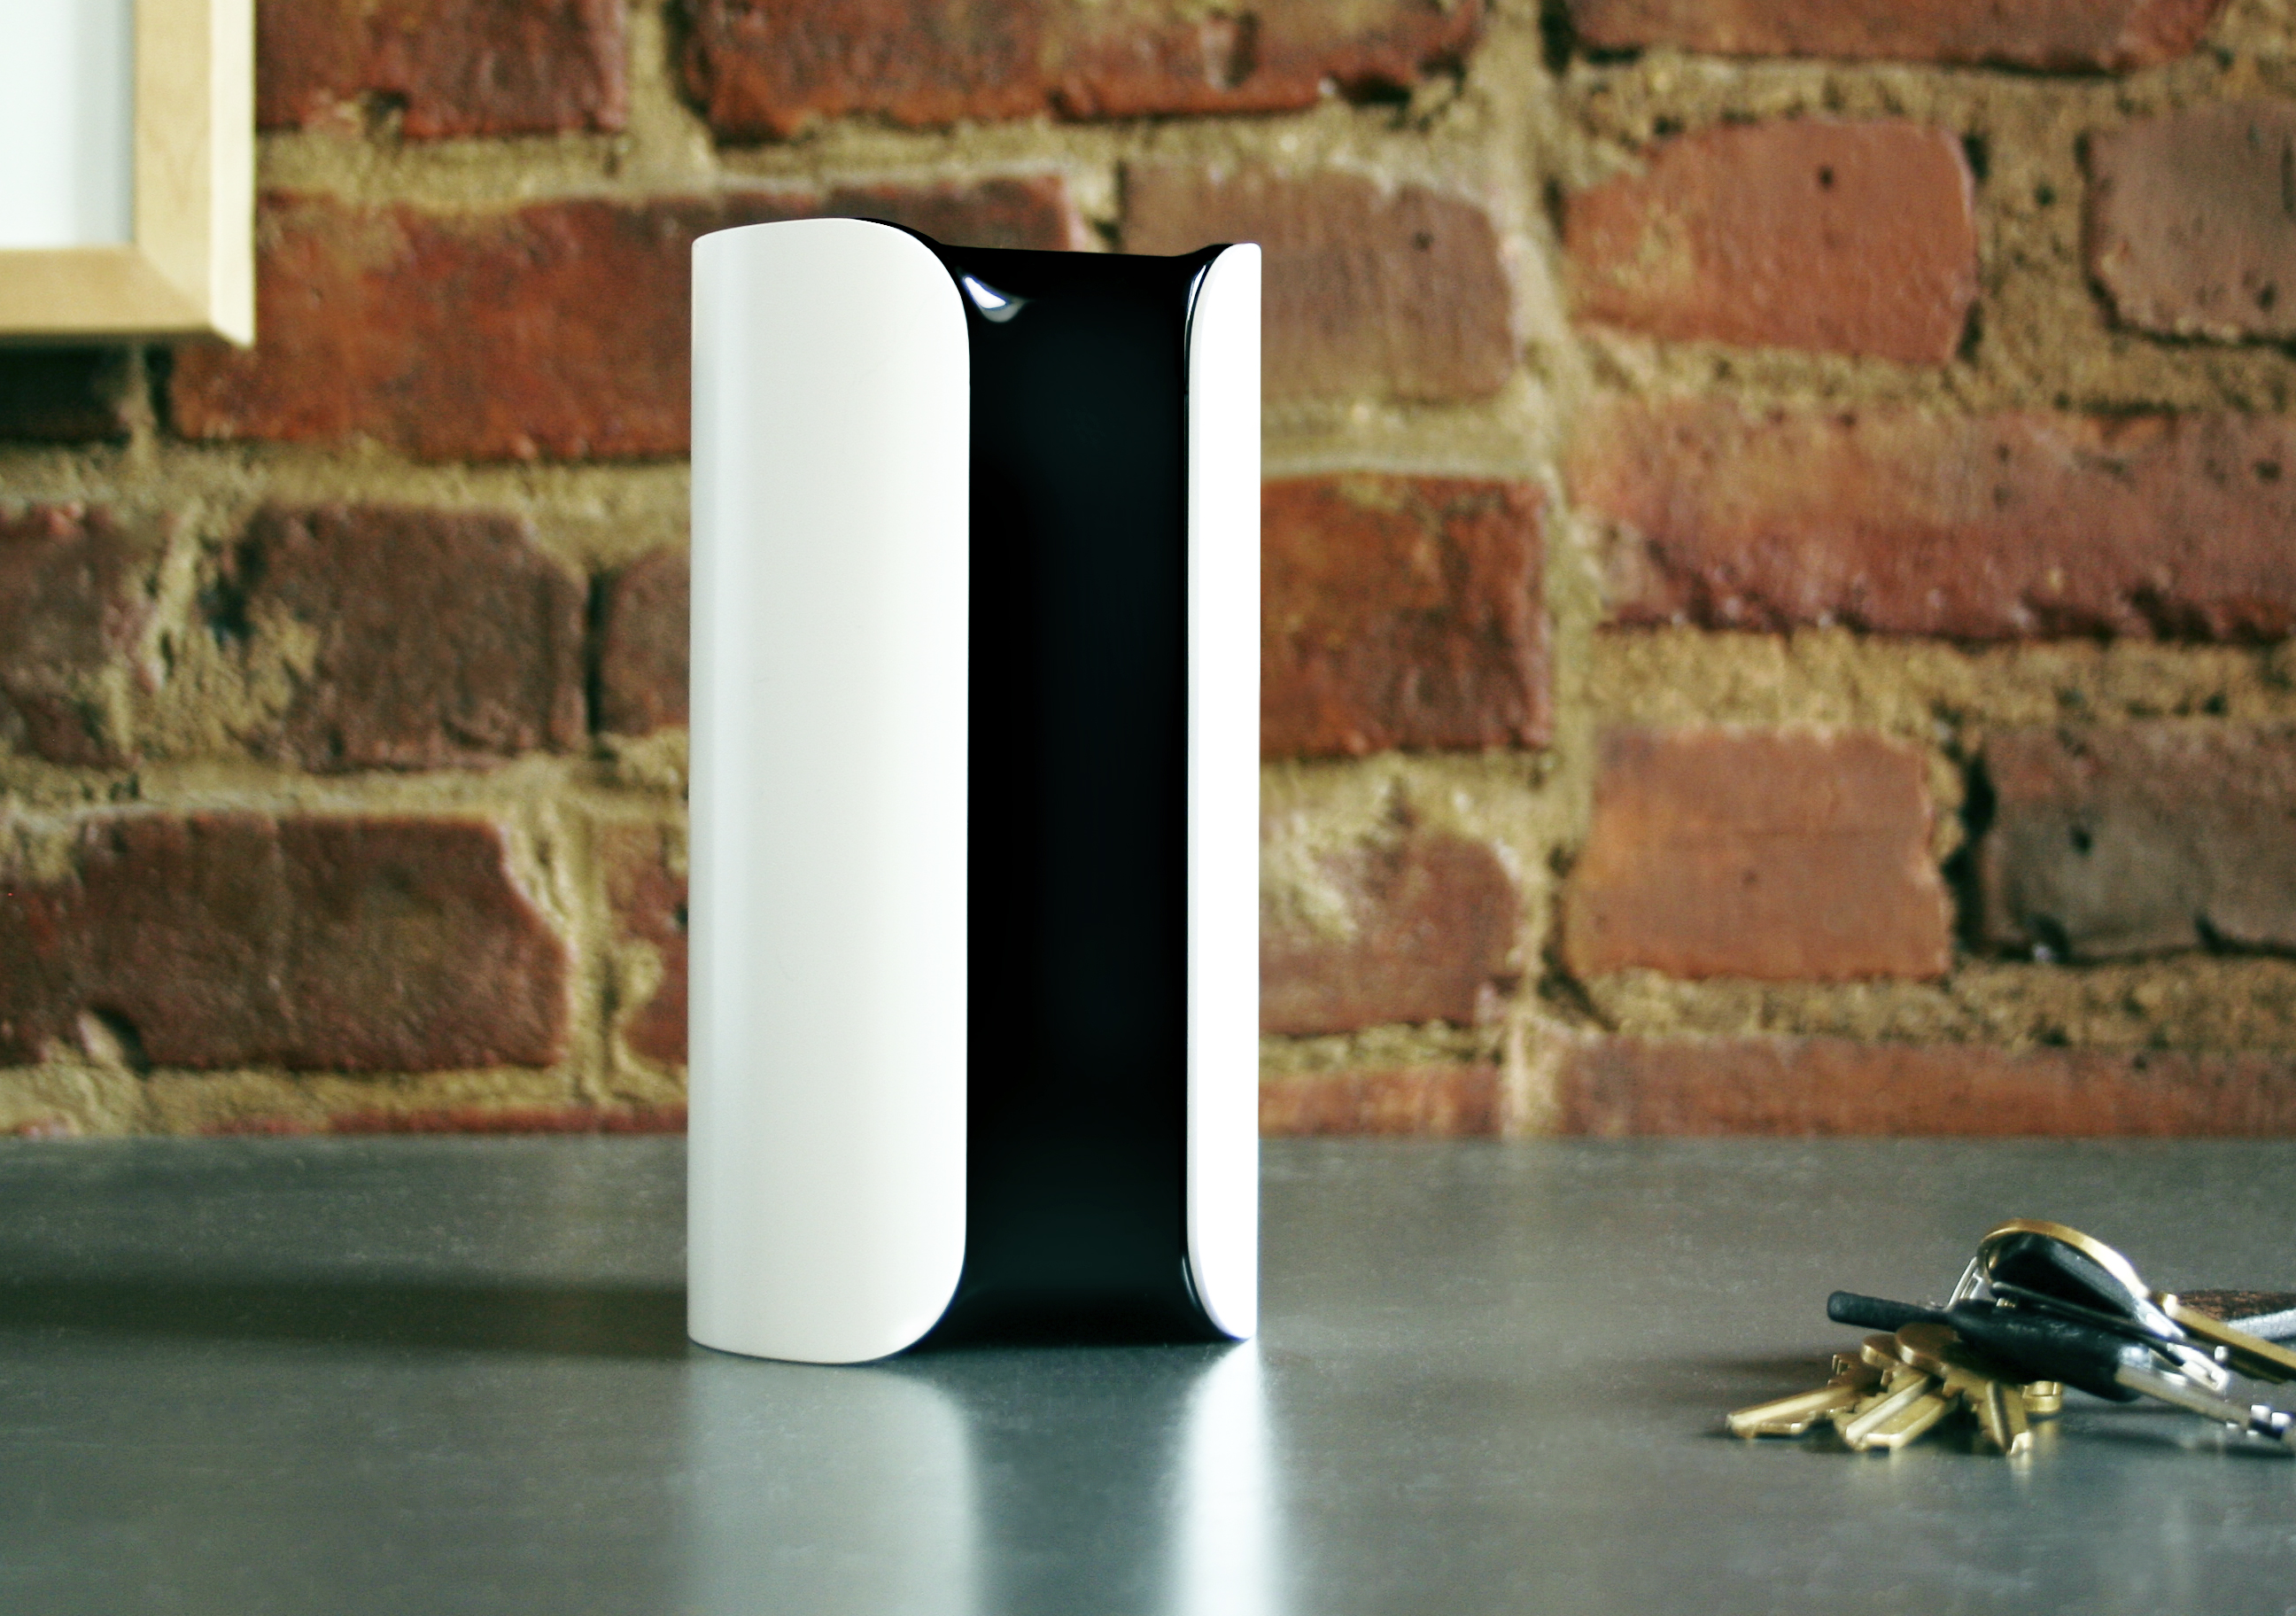 Smart Home Security Device By Canary